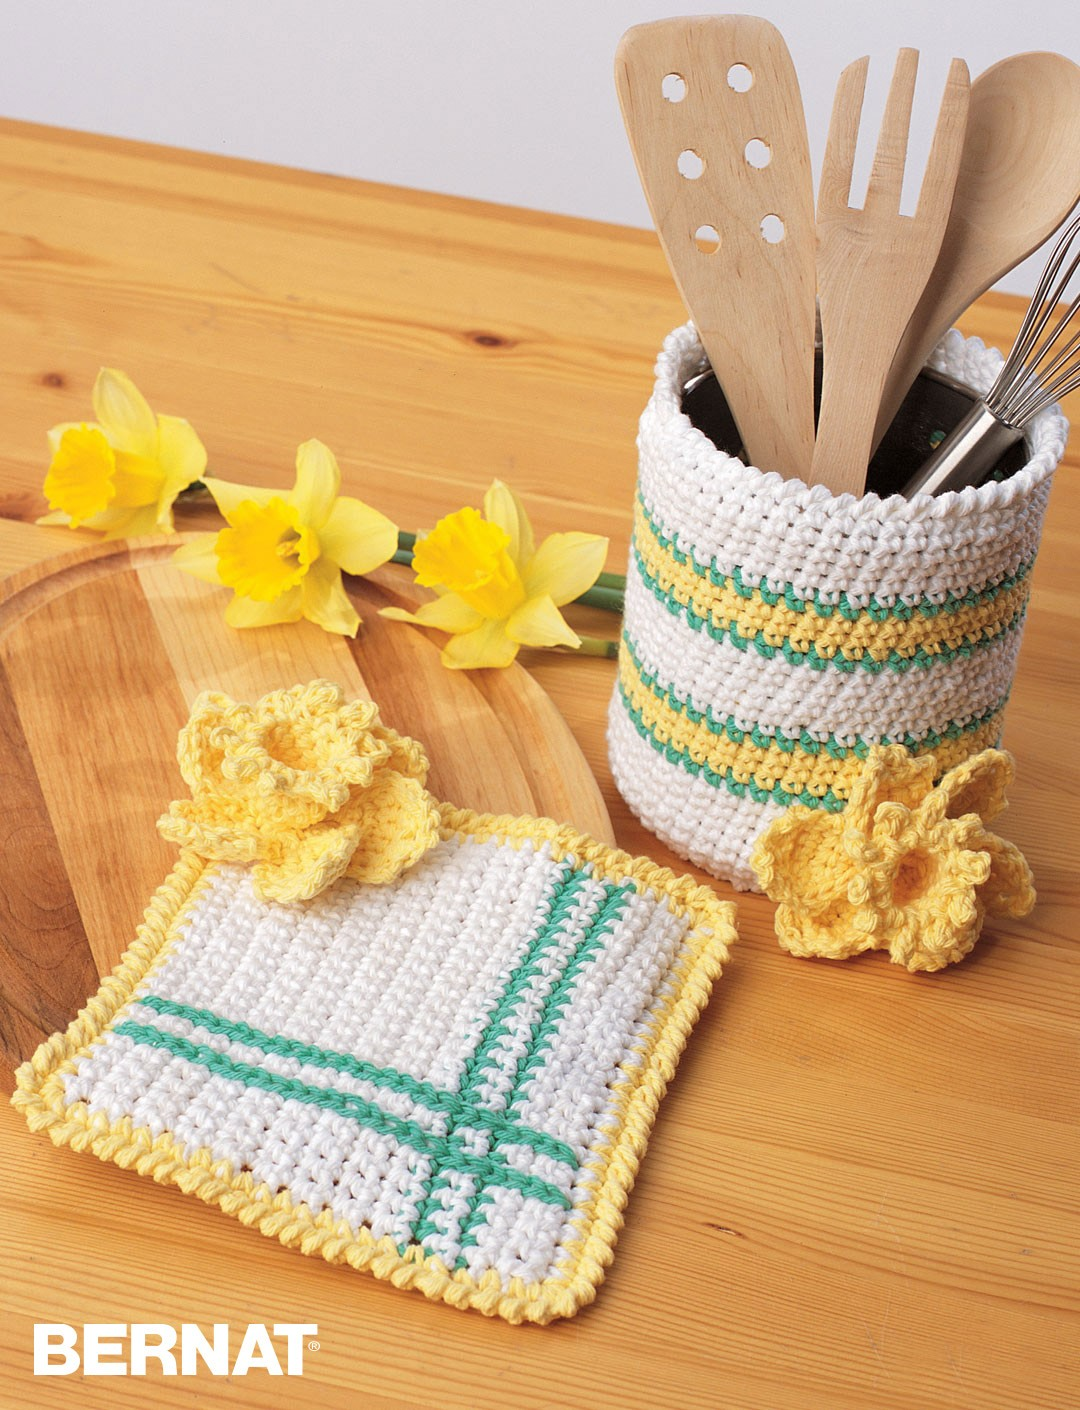 Free Crochet Patterns Kitchen Accessories : Bernat Springtime Crochet Kitchen Accessories, Crochet ...